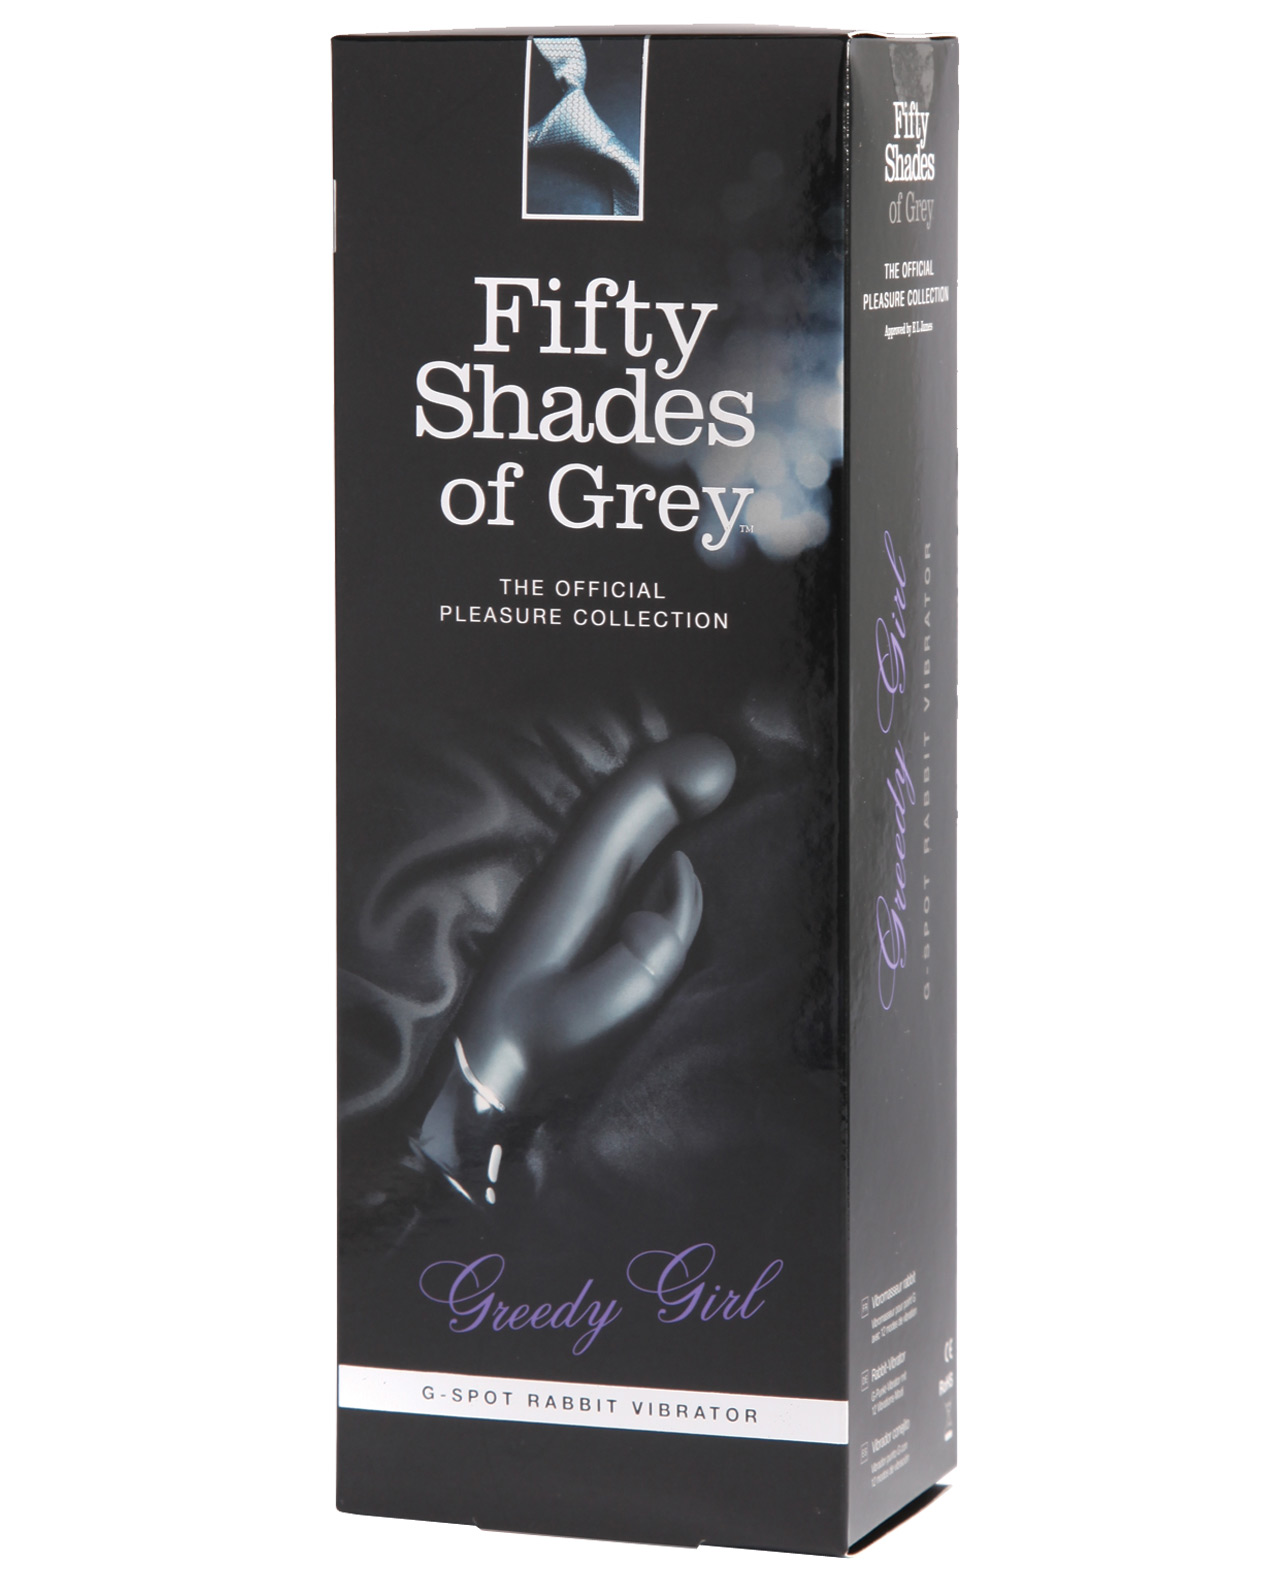 Fifty Shades of Grey Greedy Girl Rechargeable G Spot Rabbit - Standard ED-FSG54811